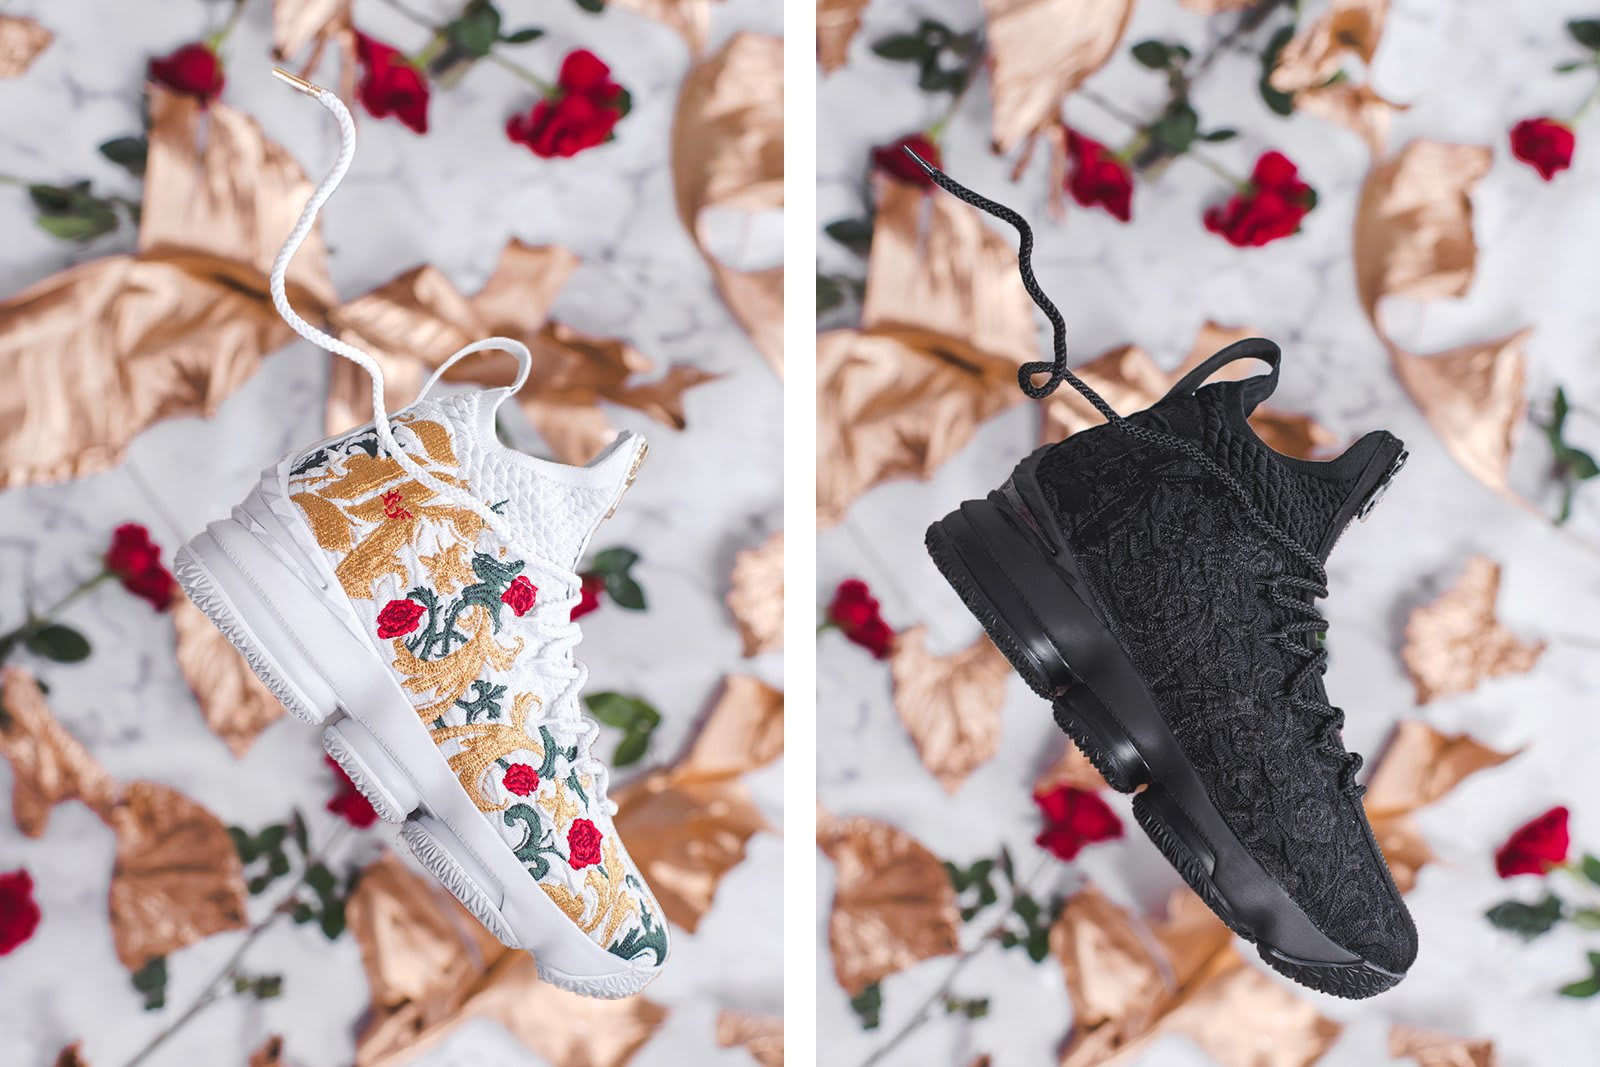 Kith x Nike LeBron 15 'Long Live the King' Chapter 2 Collection 5